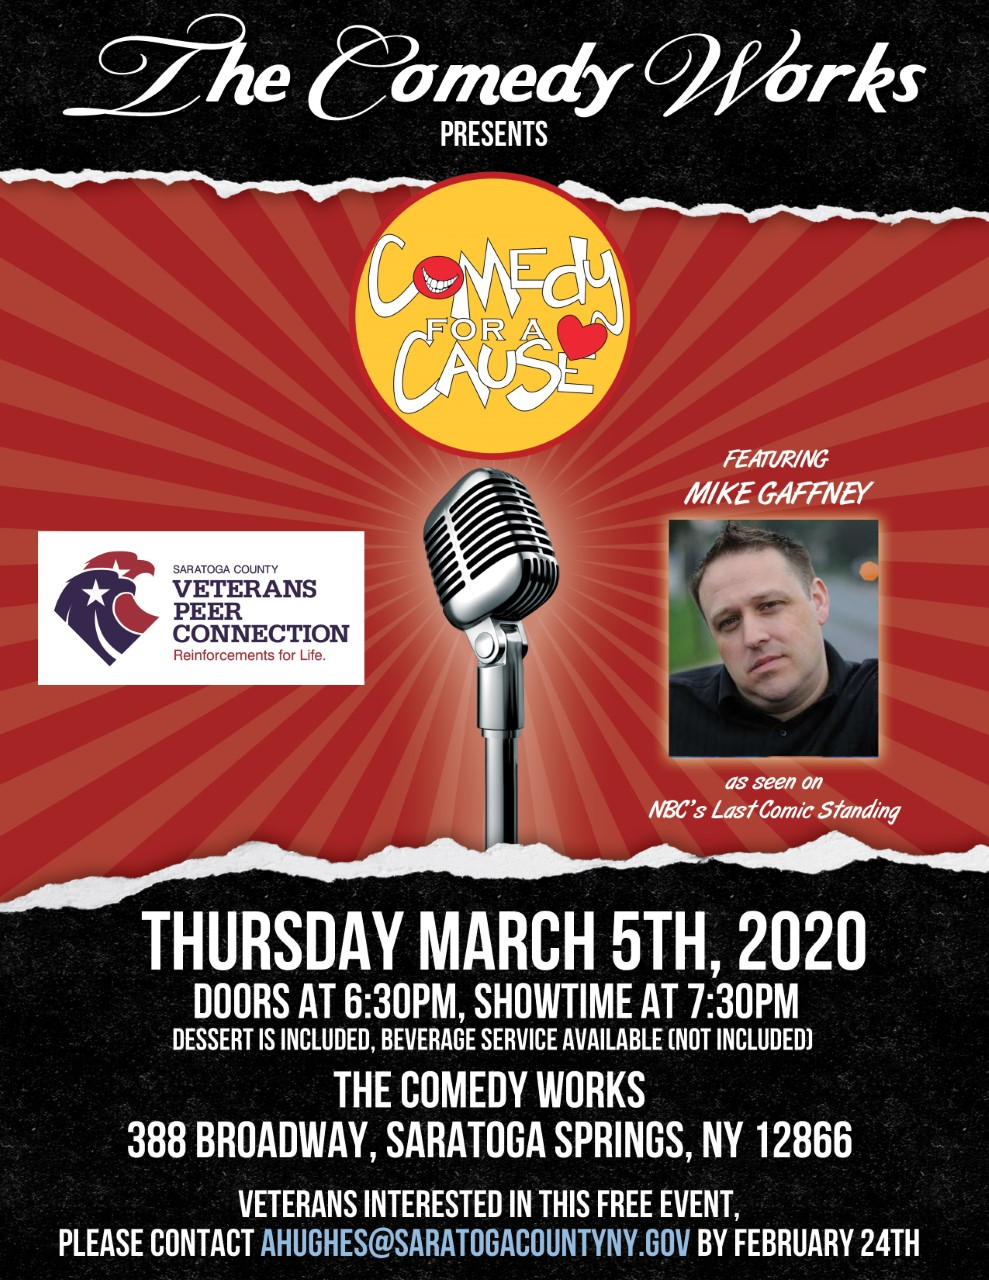 Comedy for a Cause featuring Mike Gaffney